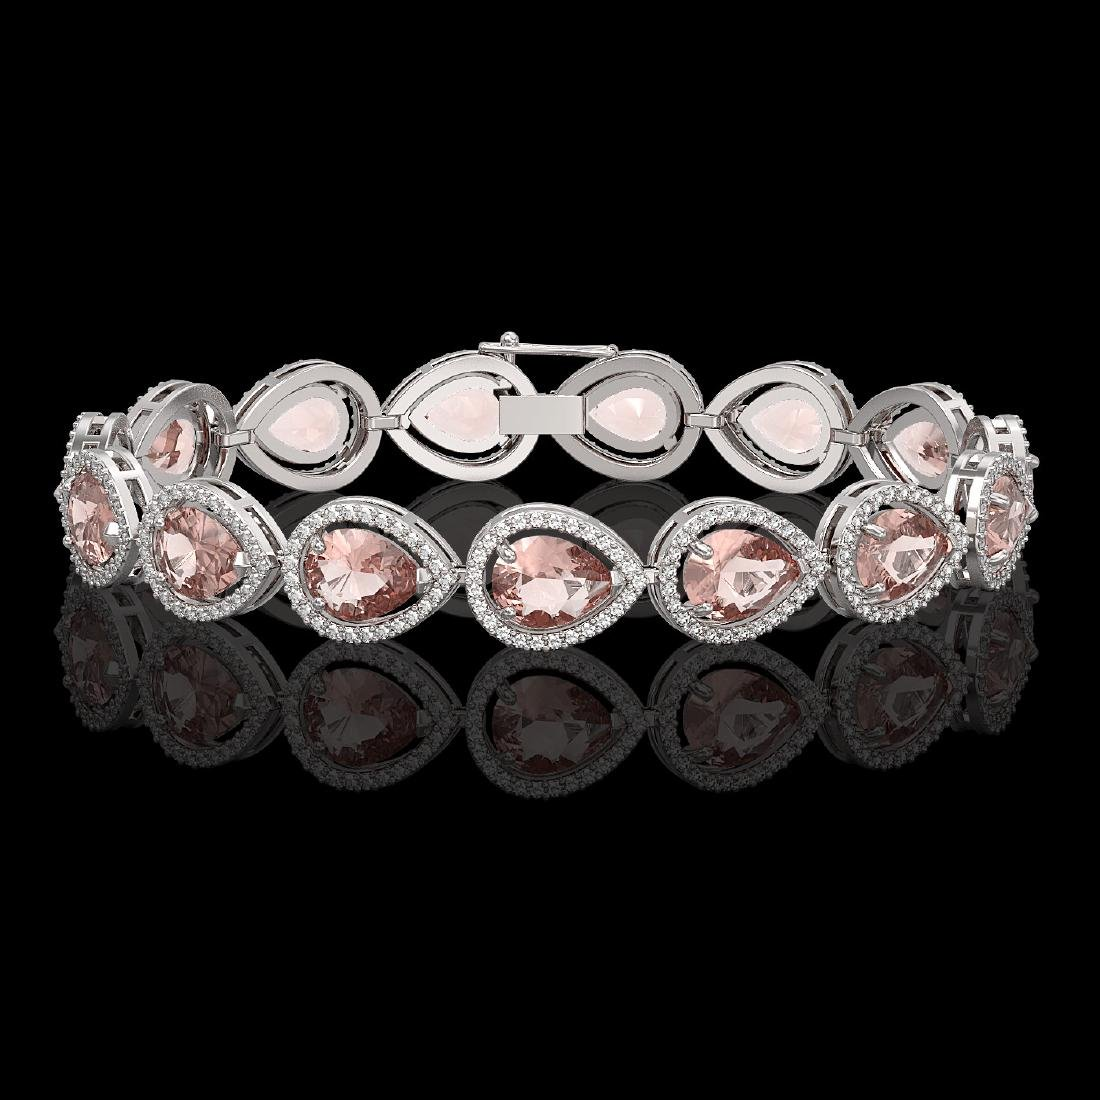 19.55 CTW Morganite & Diamond Halo Bracelet 10K White